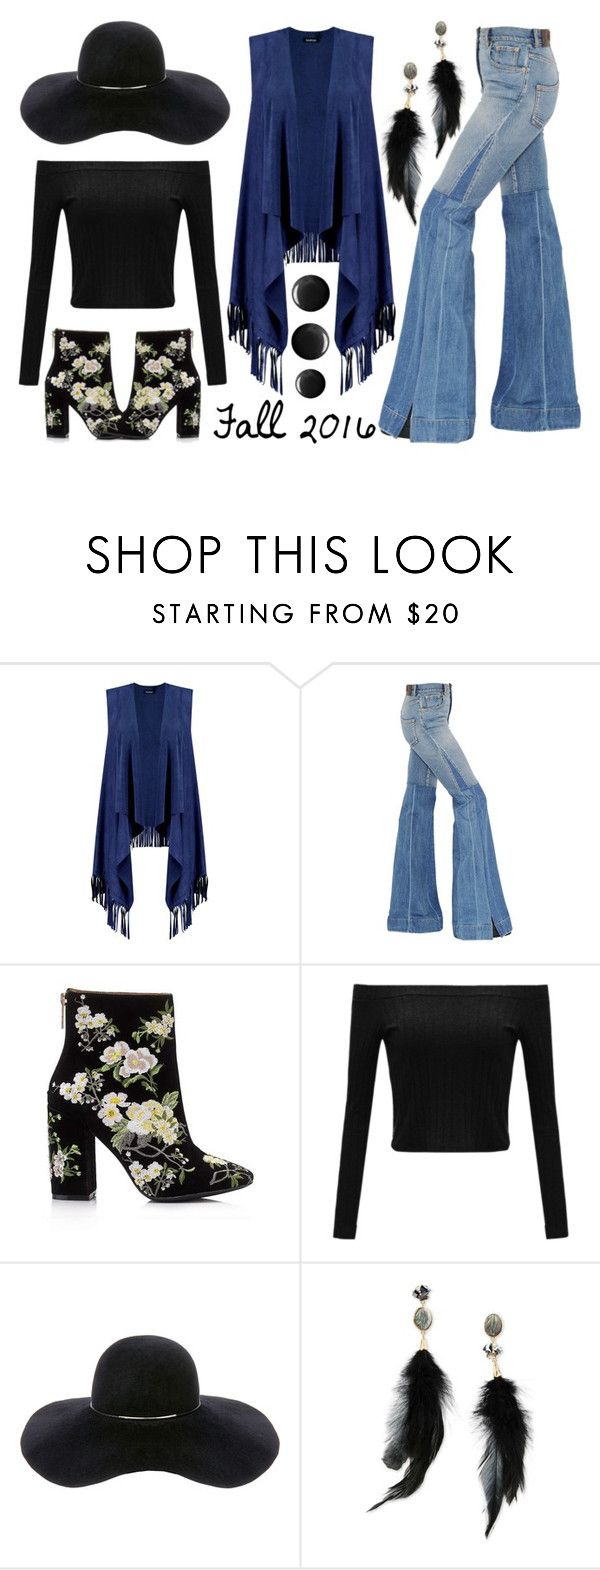 """The Bohemian Way - Fall 2016"" by latoyacl ❤ liked on Polyvore featuring Boohoo, Roberto Cavalli, Miss Selfridge, Eugenia Kim and Betsey Johnson"